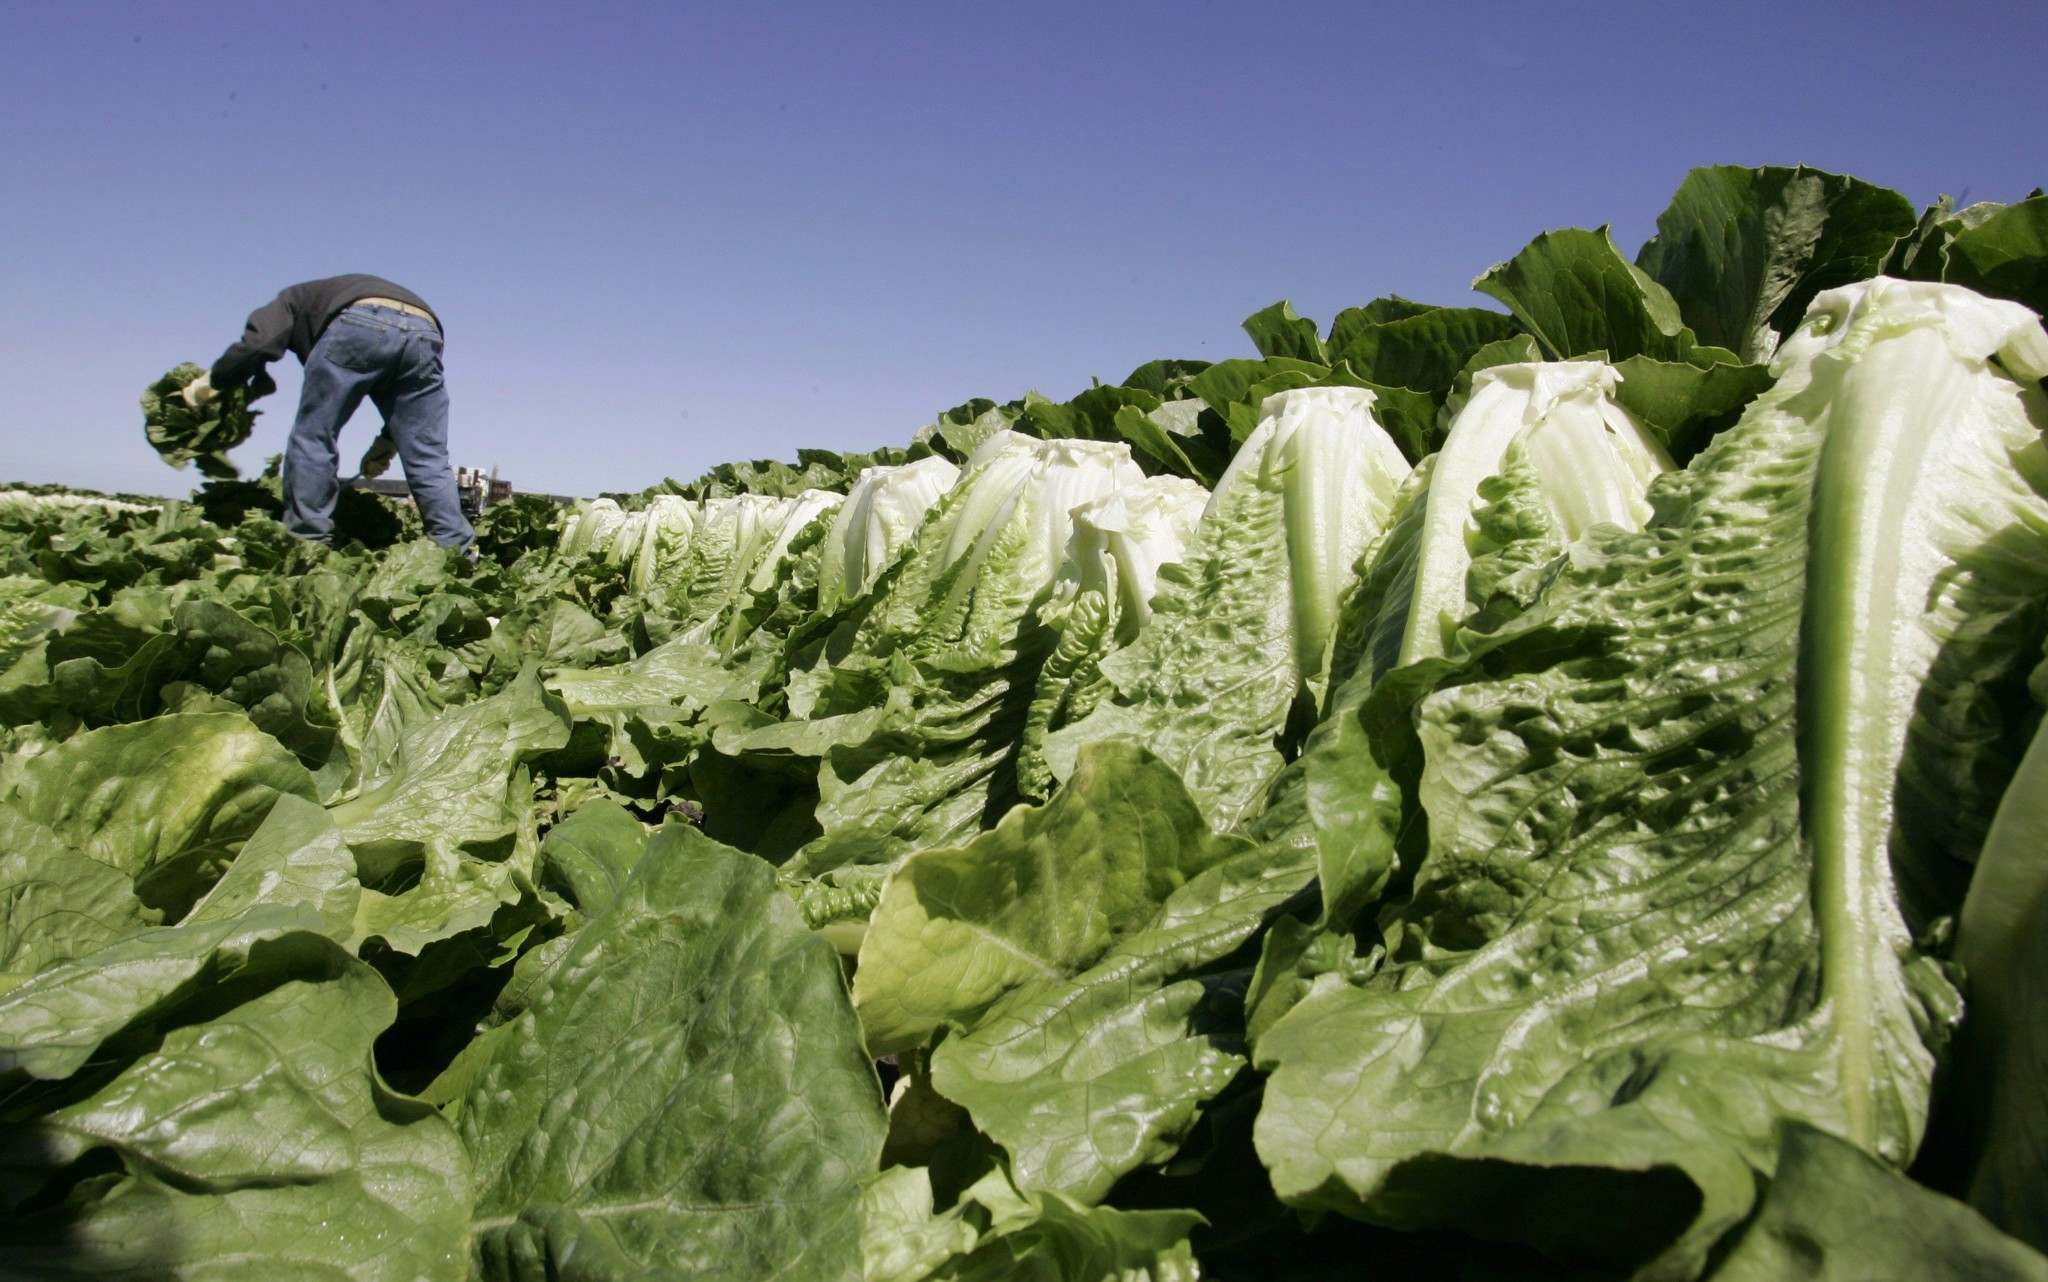 Paul Sakuma / the associated press files</p><p>A worker harvests romaine lettuce in Salinas, Calif., amid a recent E. coli outbreak linked to the leafy vegetable.</p></p>